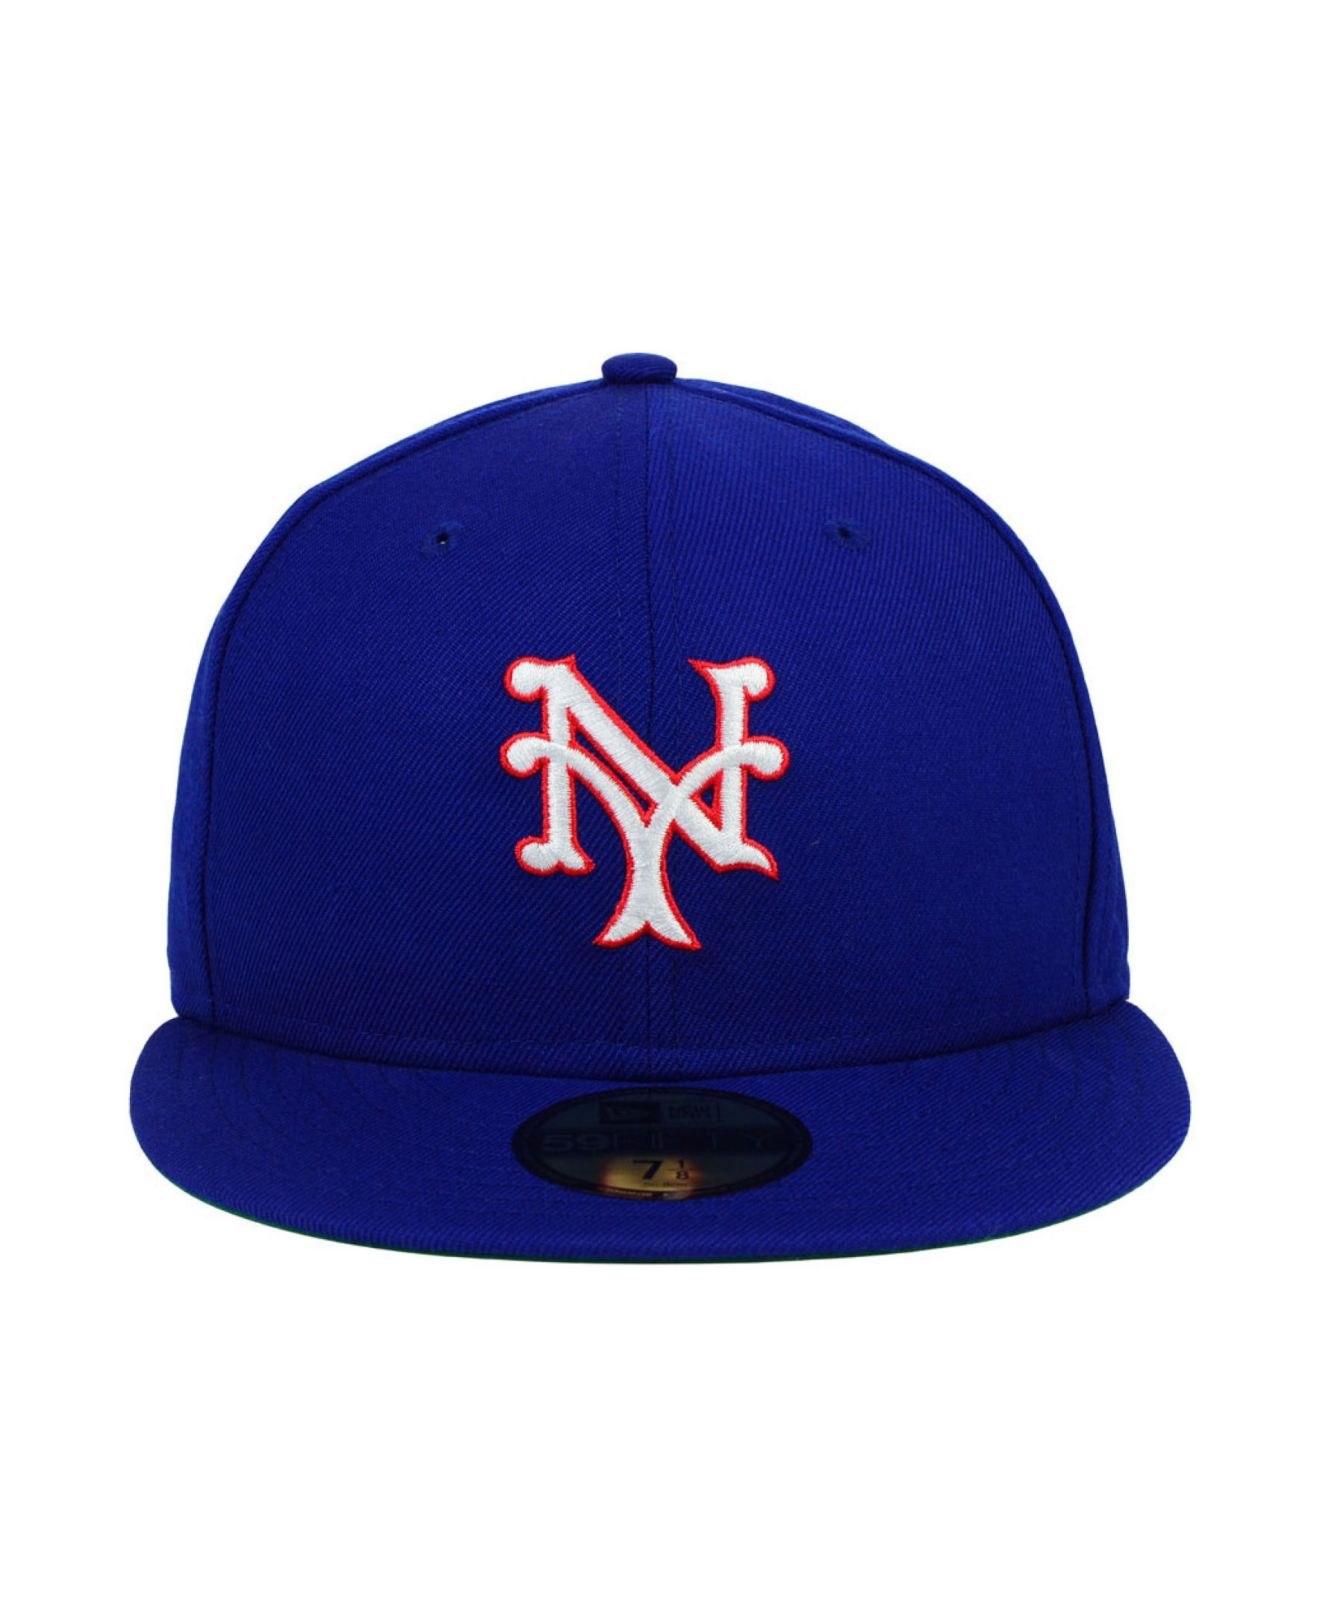 84ac75f4381 Lyst - KTZ New York Giants Mlb Cooperstown 59Fifty Cap in Blue for Men